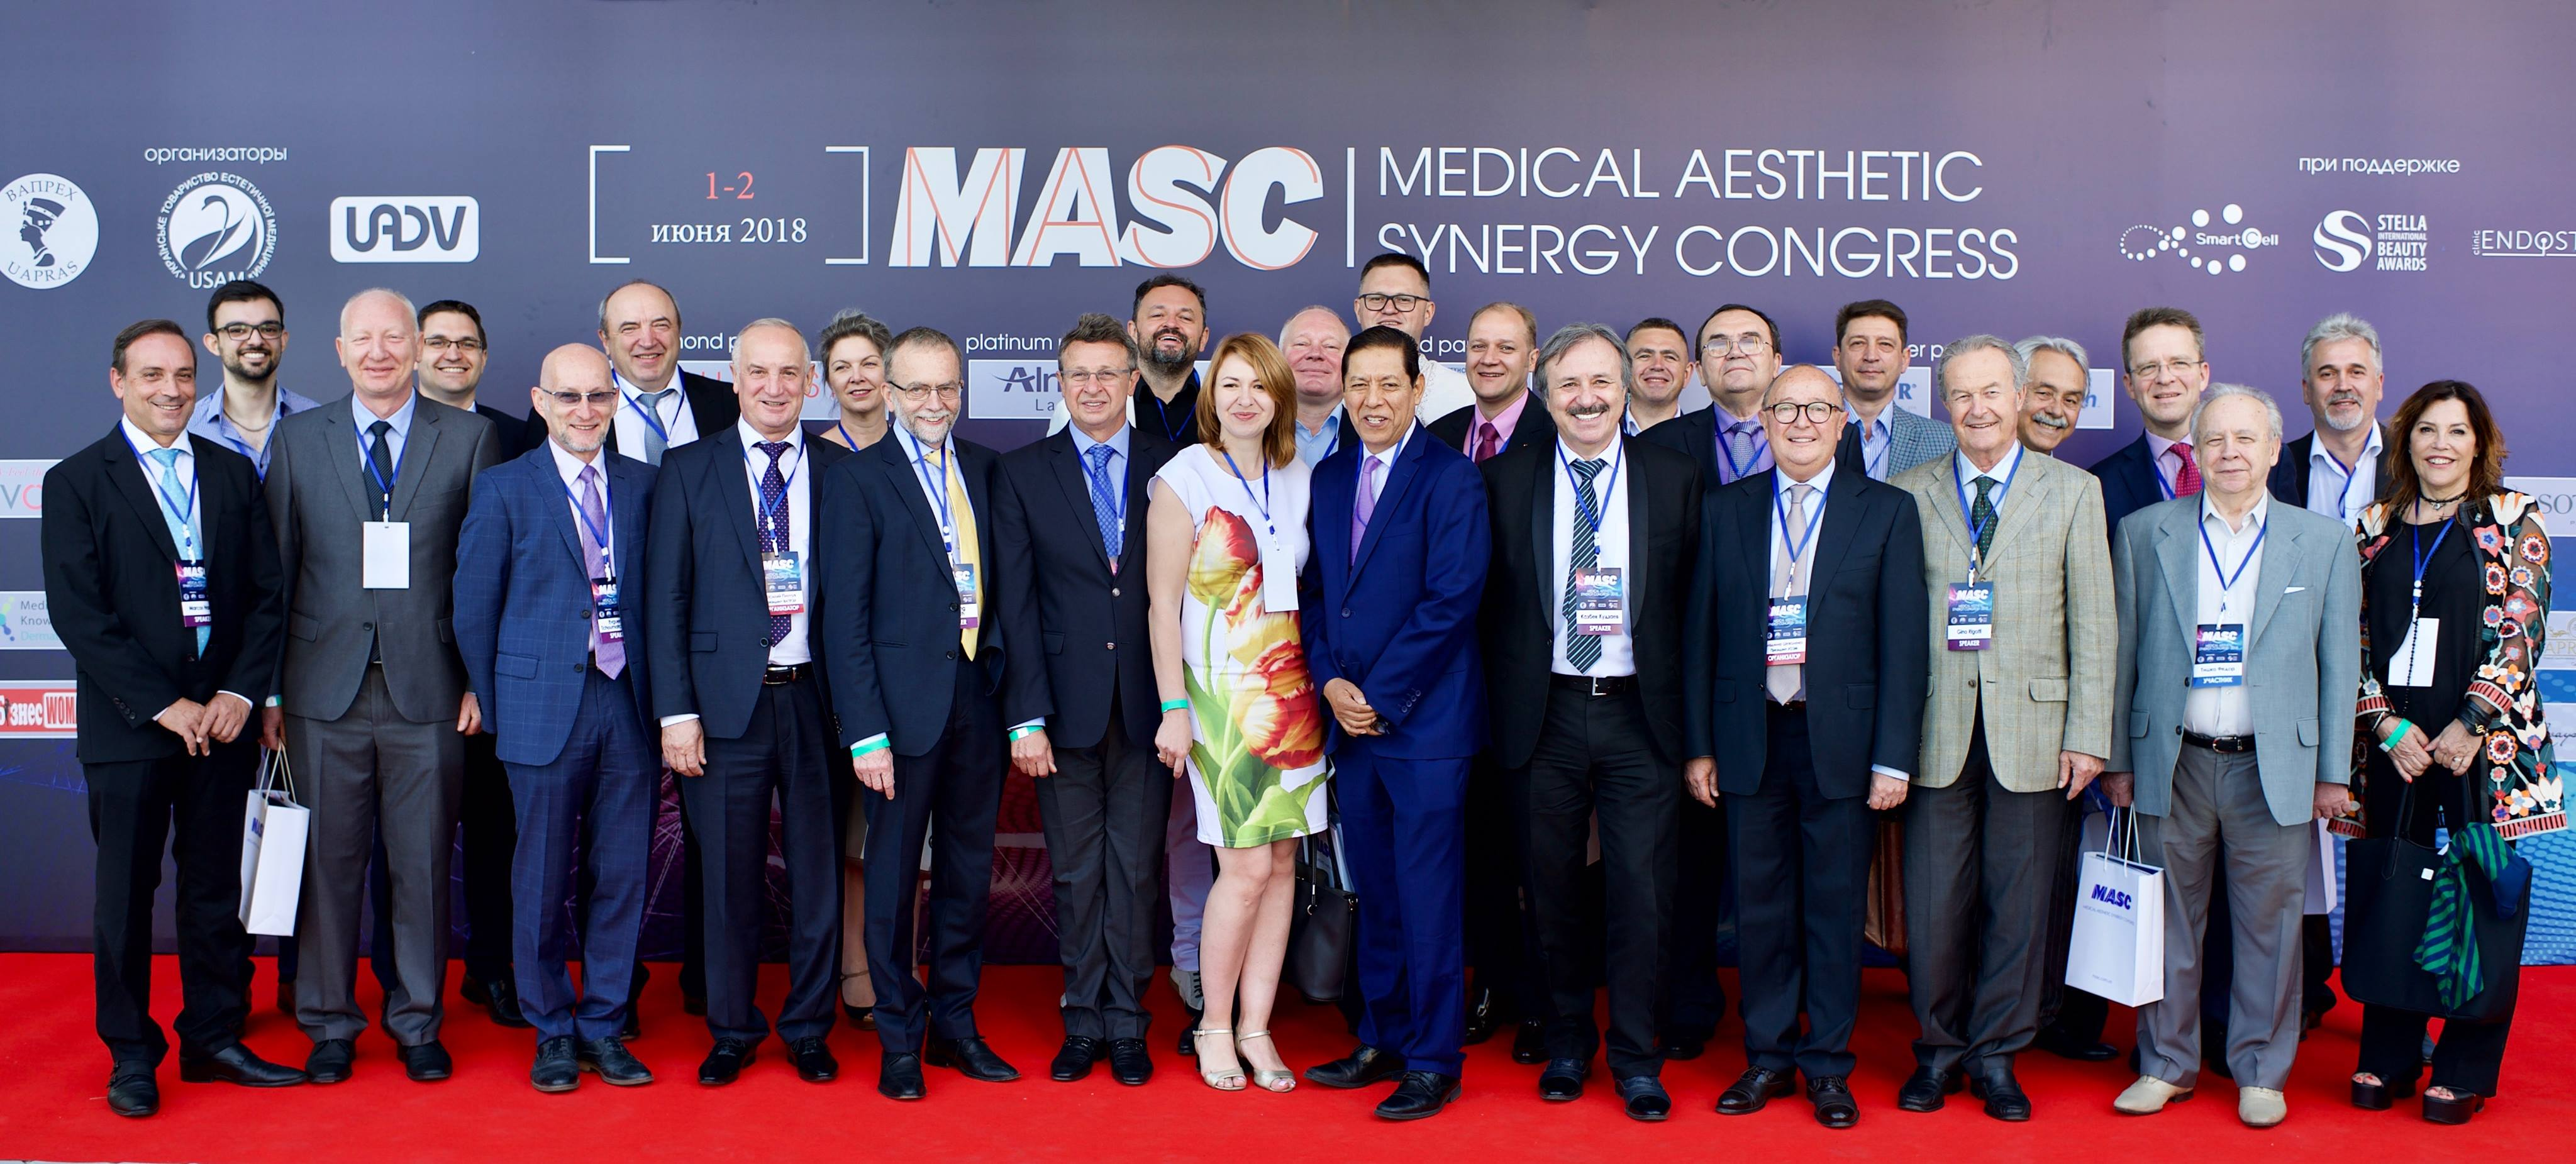 Medical Aesthetic Synergy Congress 2018 1